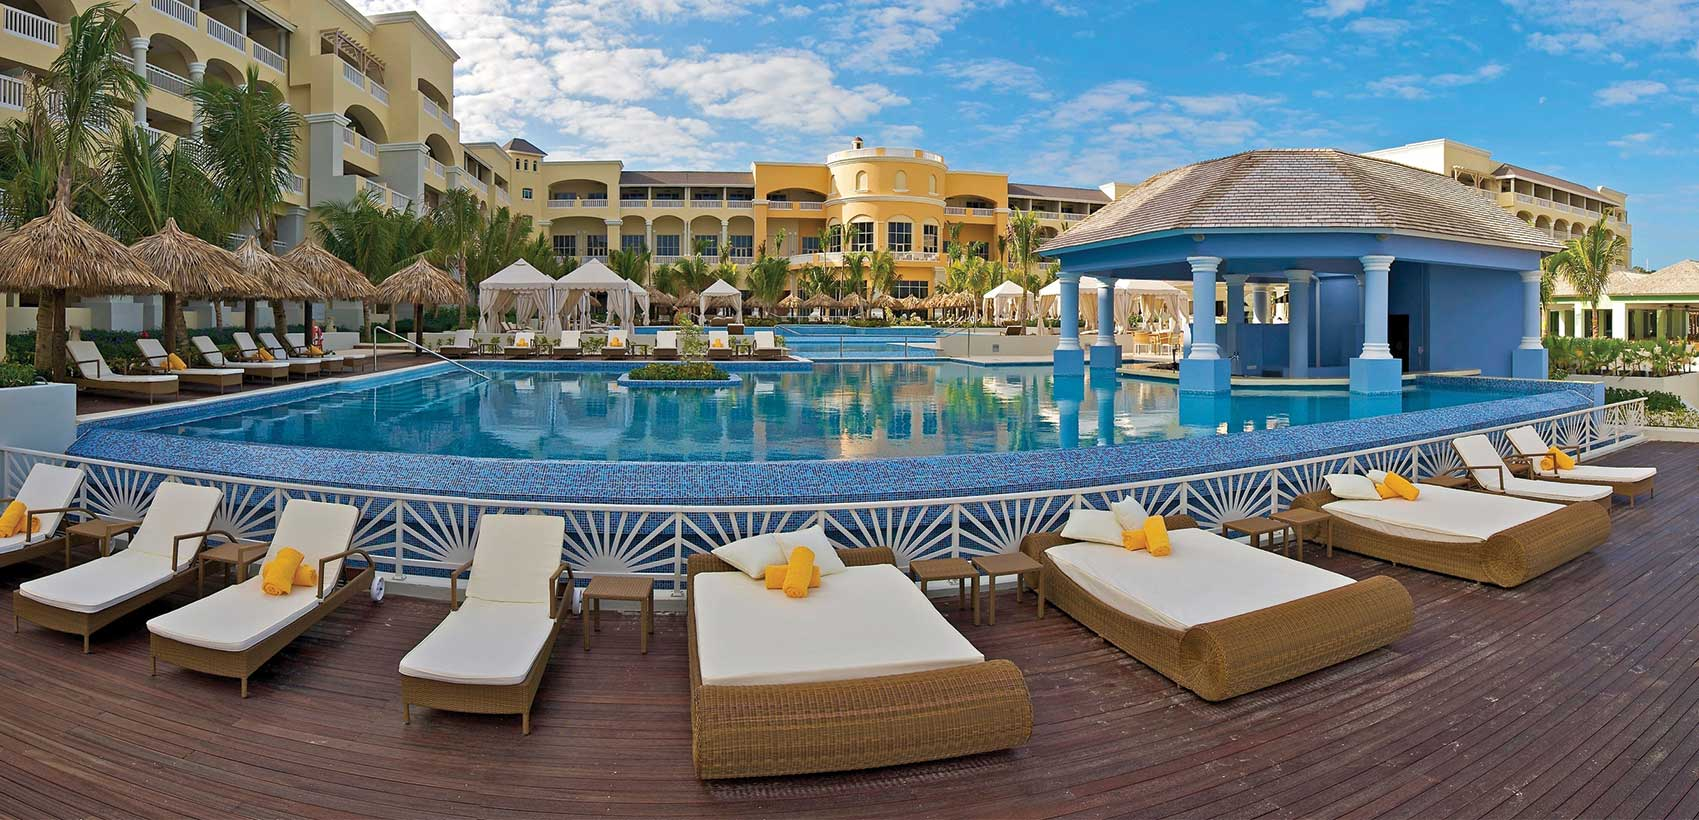 Save with WestJet Vacations on select Iberostar Hotels and Resorts 3